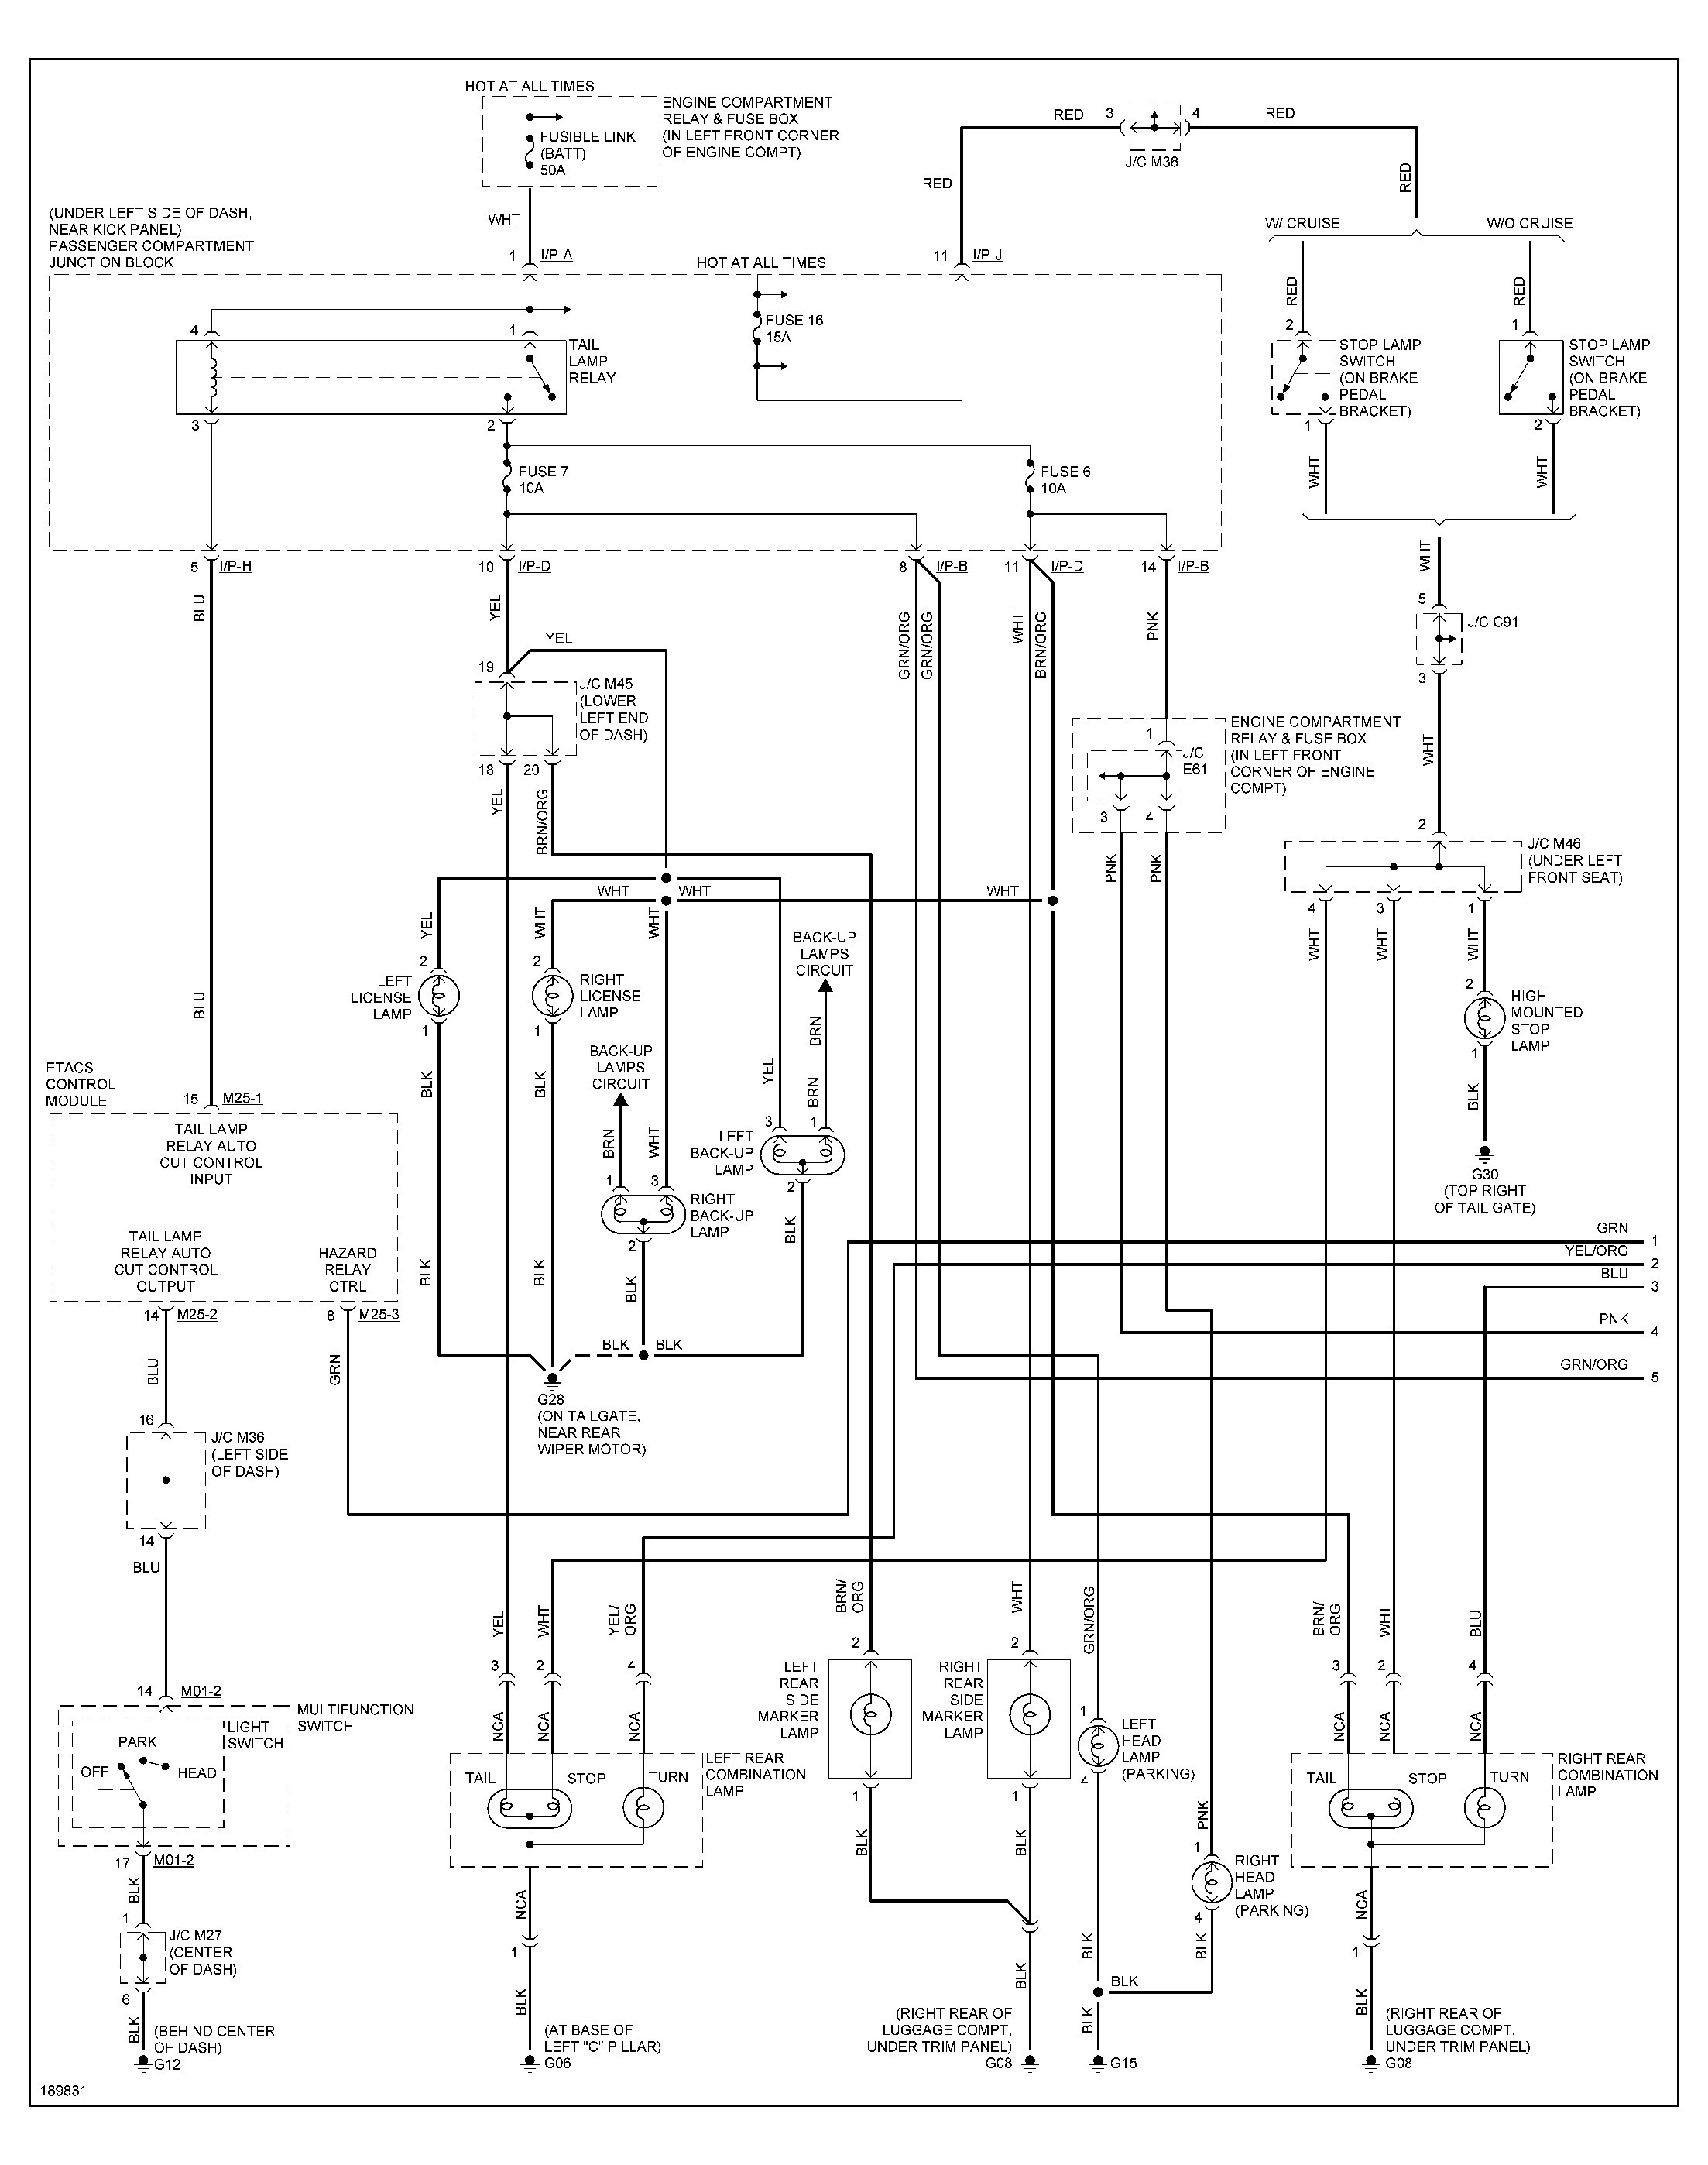 Electrical Wiring Diagram Hyundai Accent Data Wiring Diagram 2013 Hyundai  Sonata Wiring-Diagram Hyundai Accent Wiring Diagram Pdf